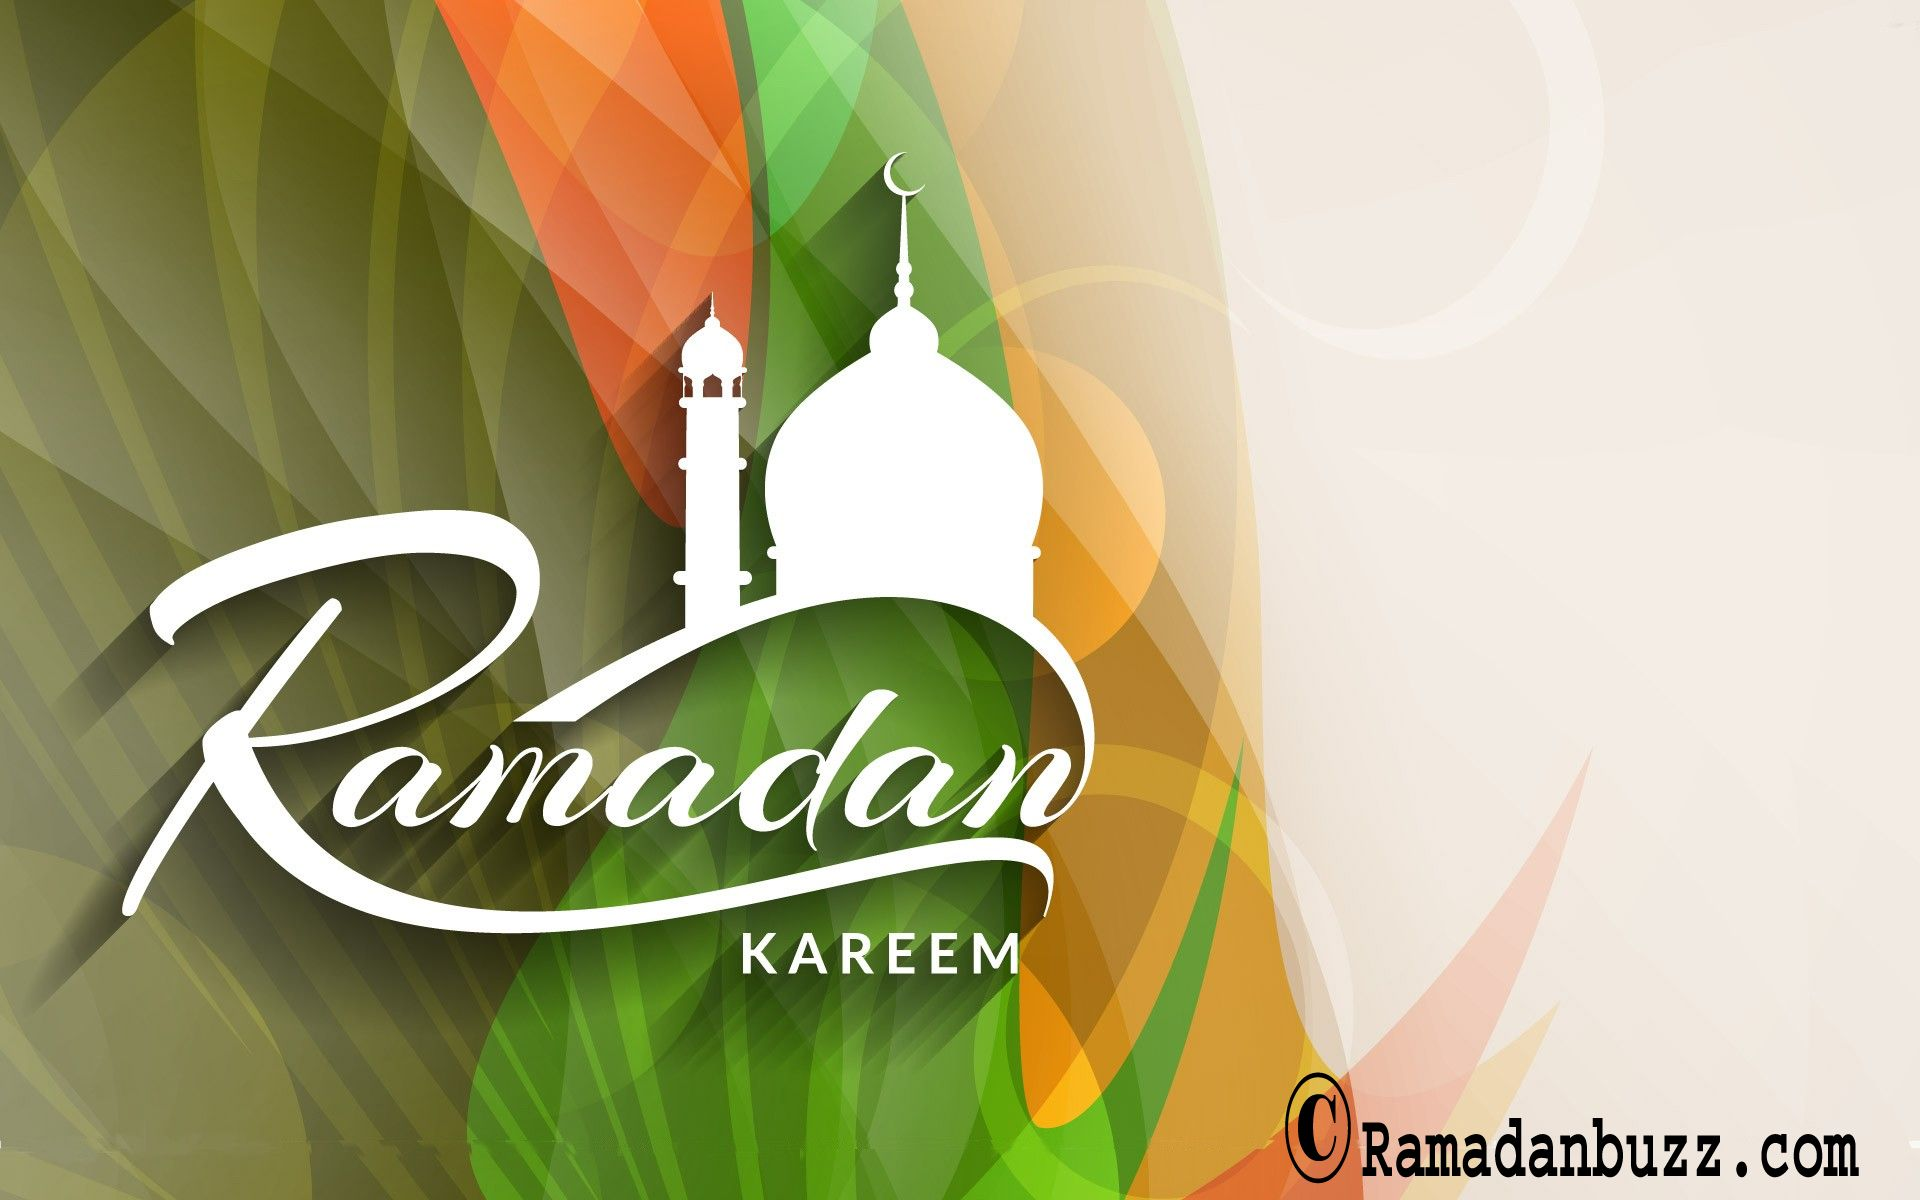 Ramadan Image Wallpapers HD : Ramzan image 2021